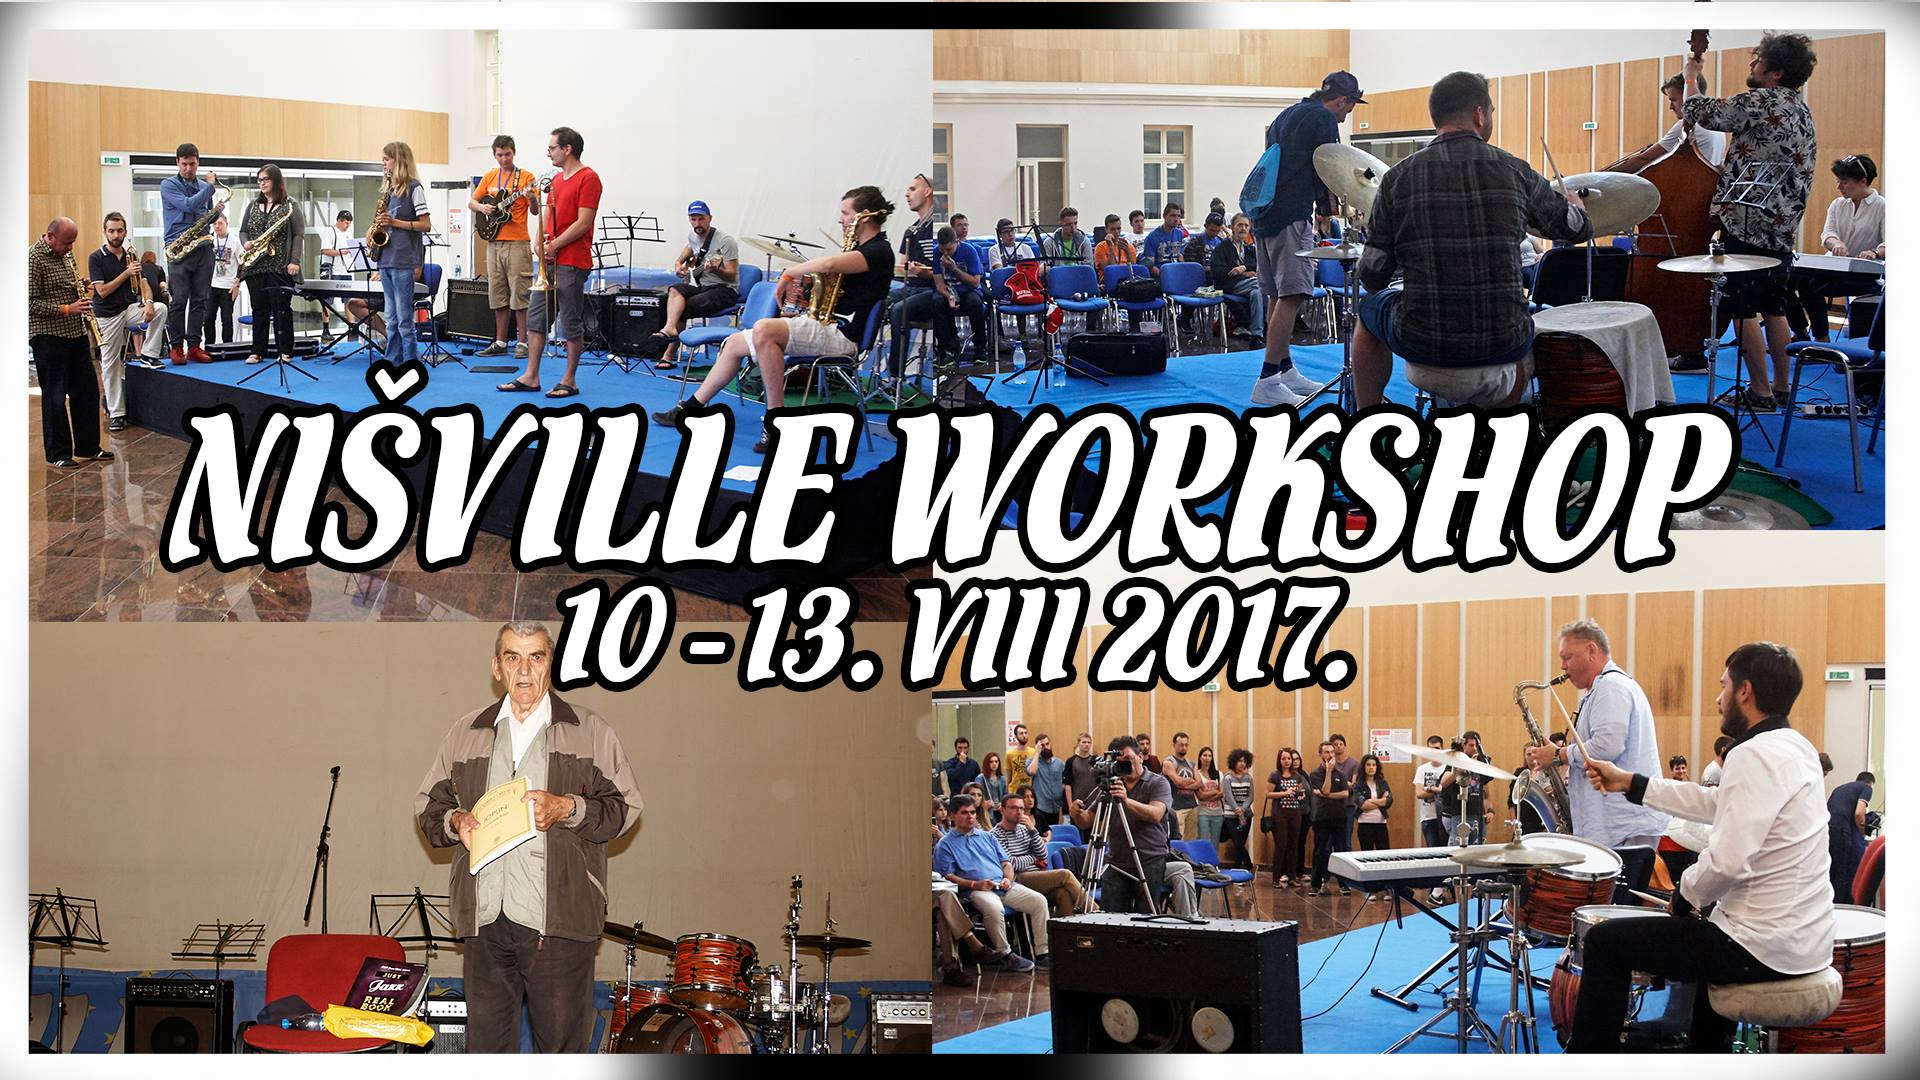 Nisville Jazz Festival Workshop